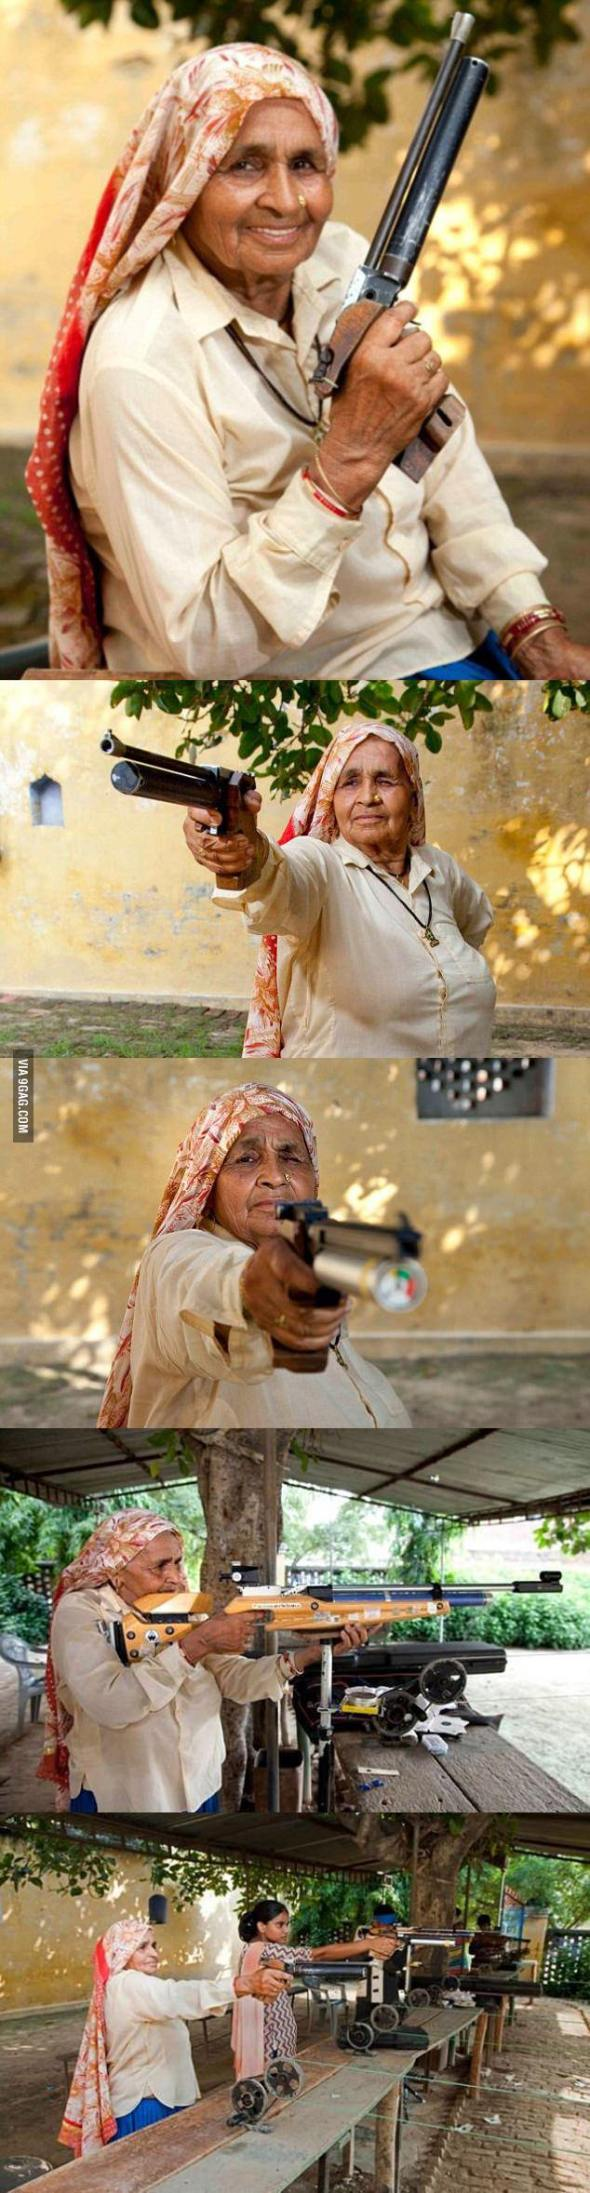 Indian grandmother, 78, is believed to be the world's oldest professional sharpshooter